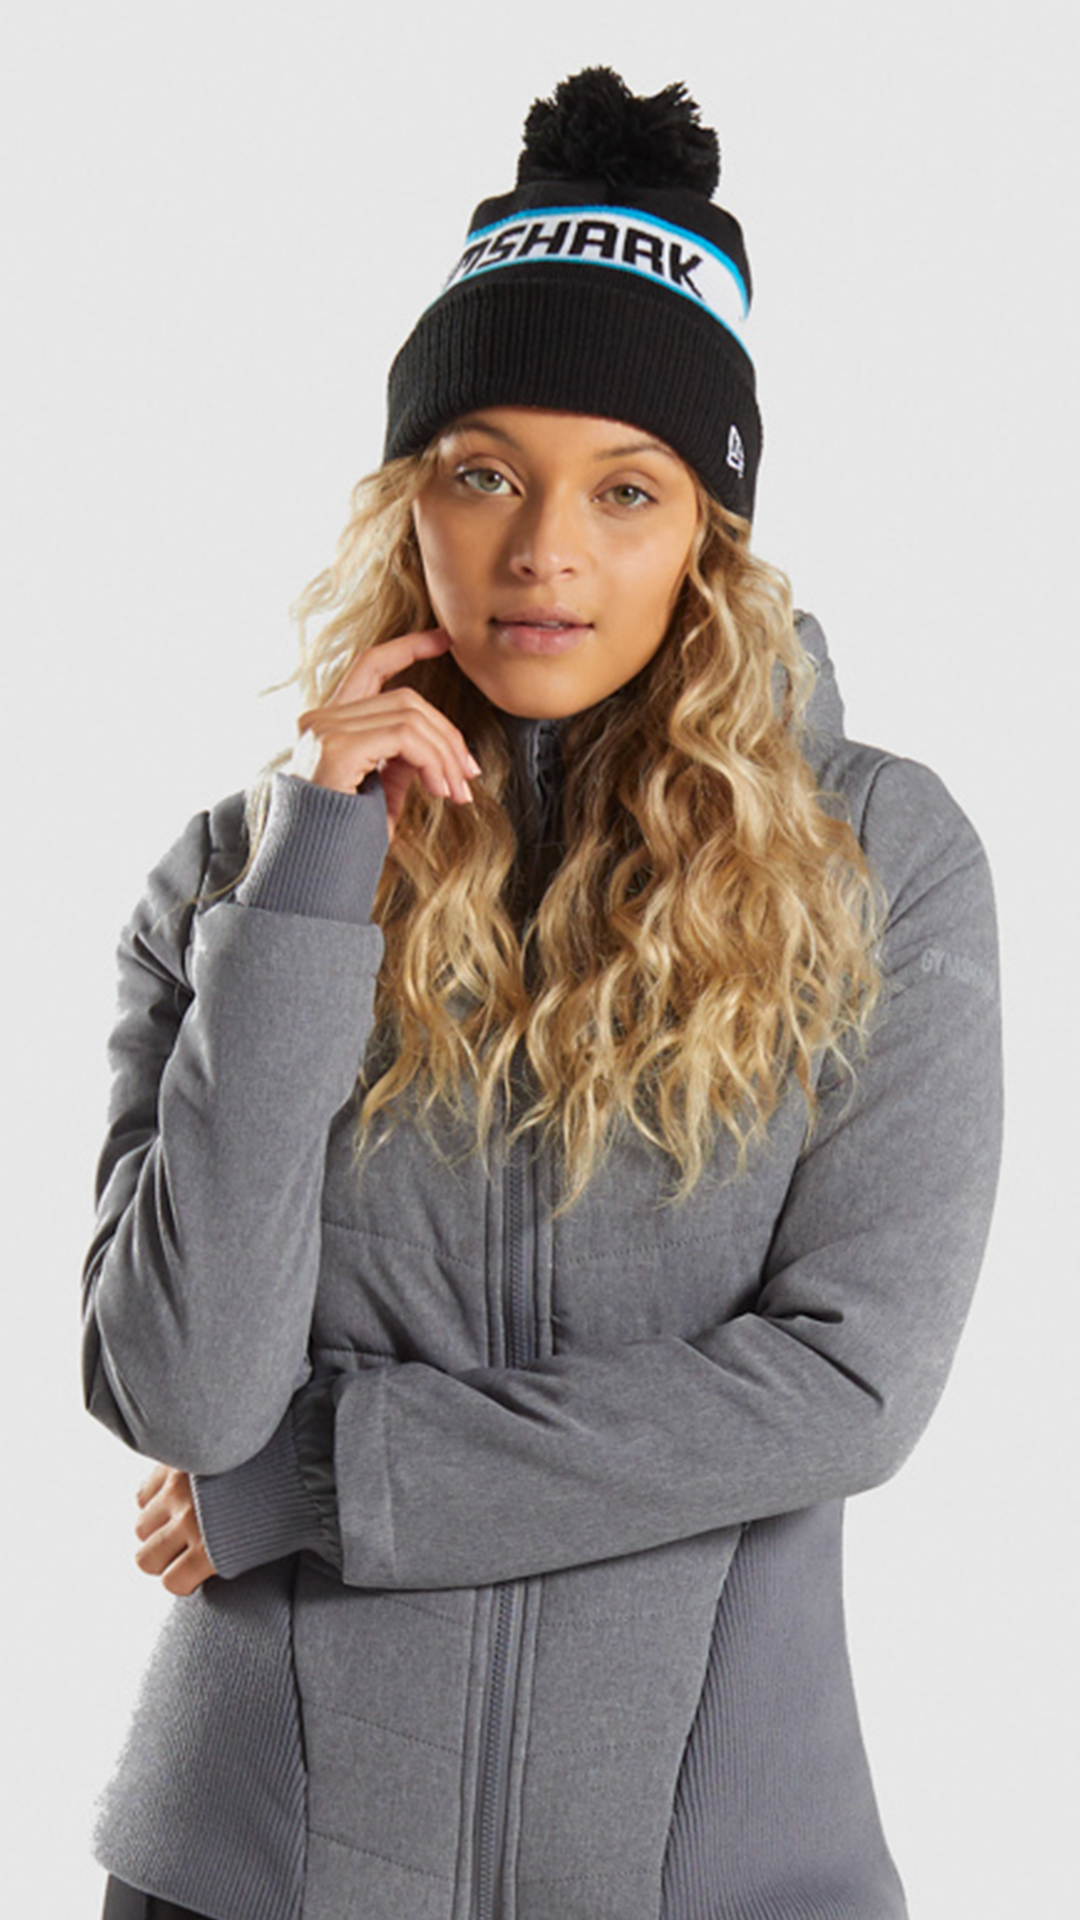 The Gymshark X New Era Bobble Hat. Keep warm this winter!  Gymshark  Gym   Sweat  Accessories  Train  Perform  Seamless  Exercise  Accessory  Hat   Bag ... 989d8ed69e6